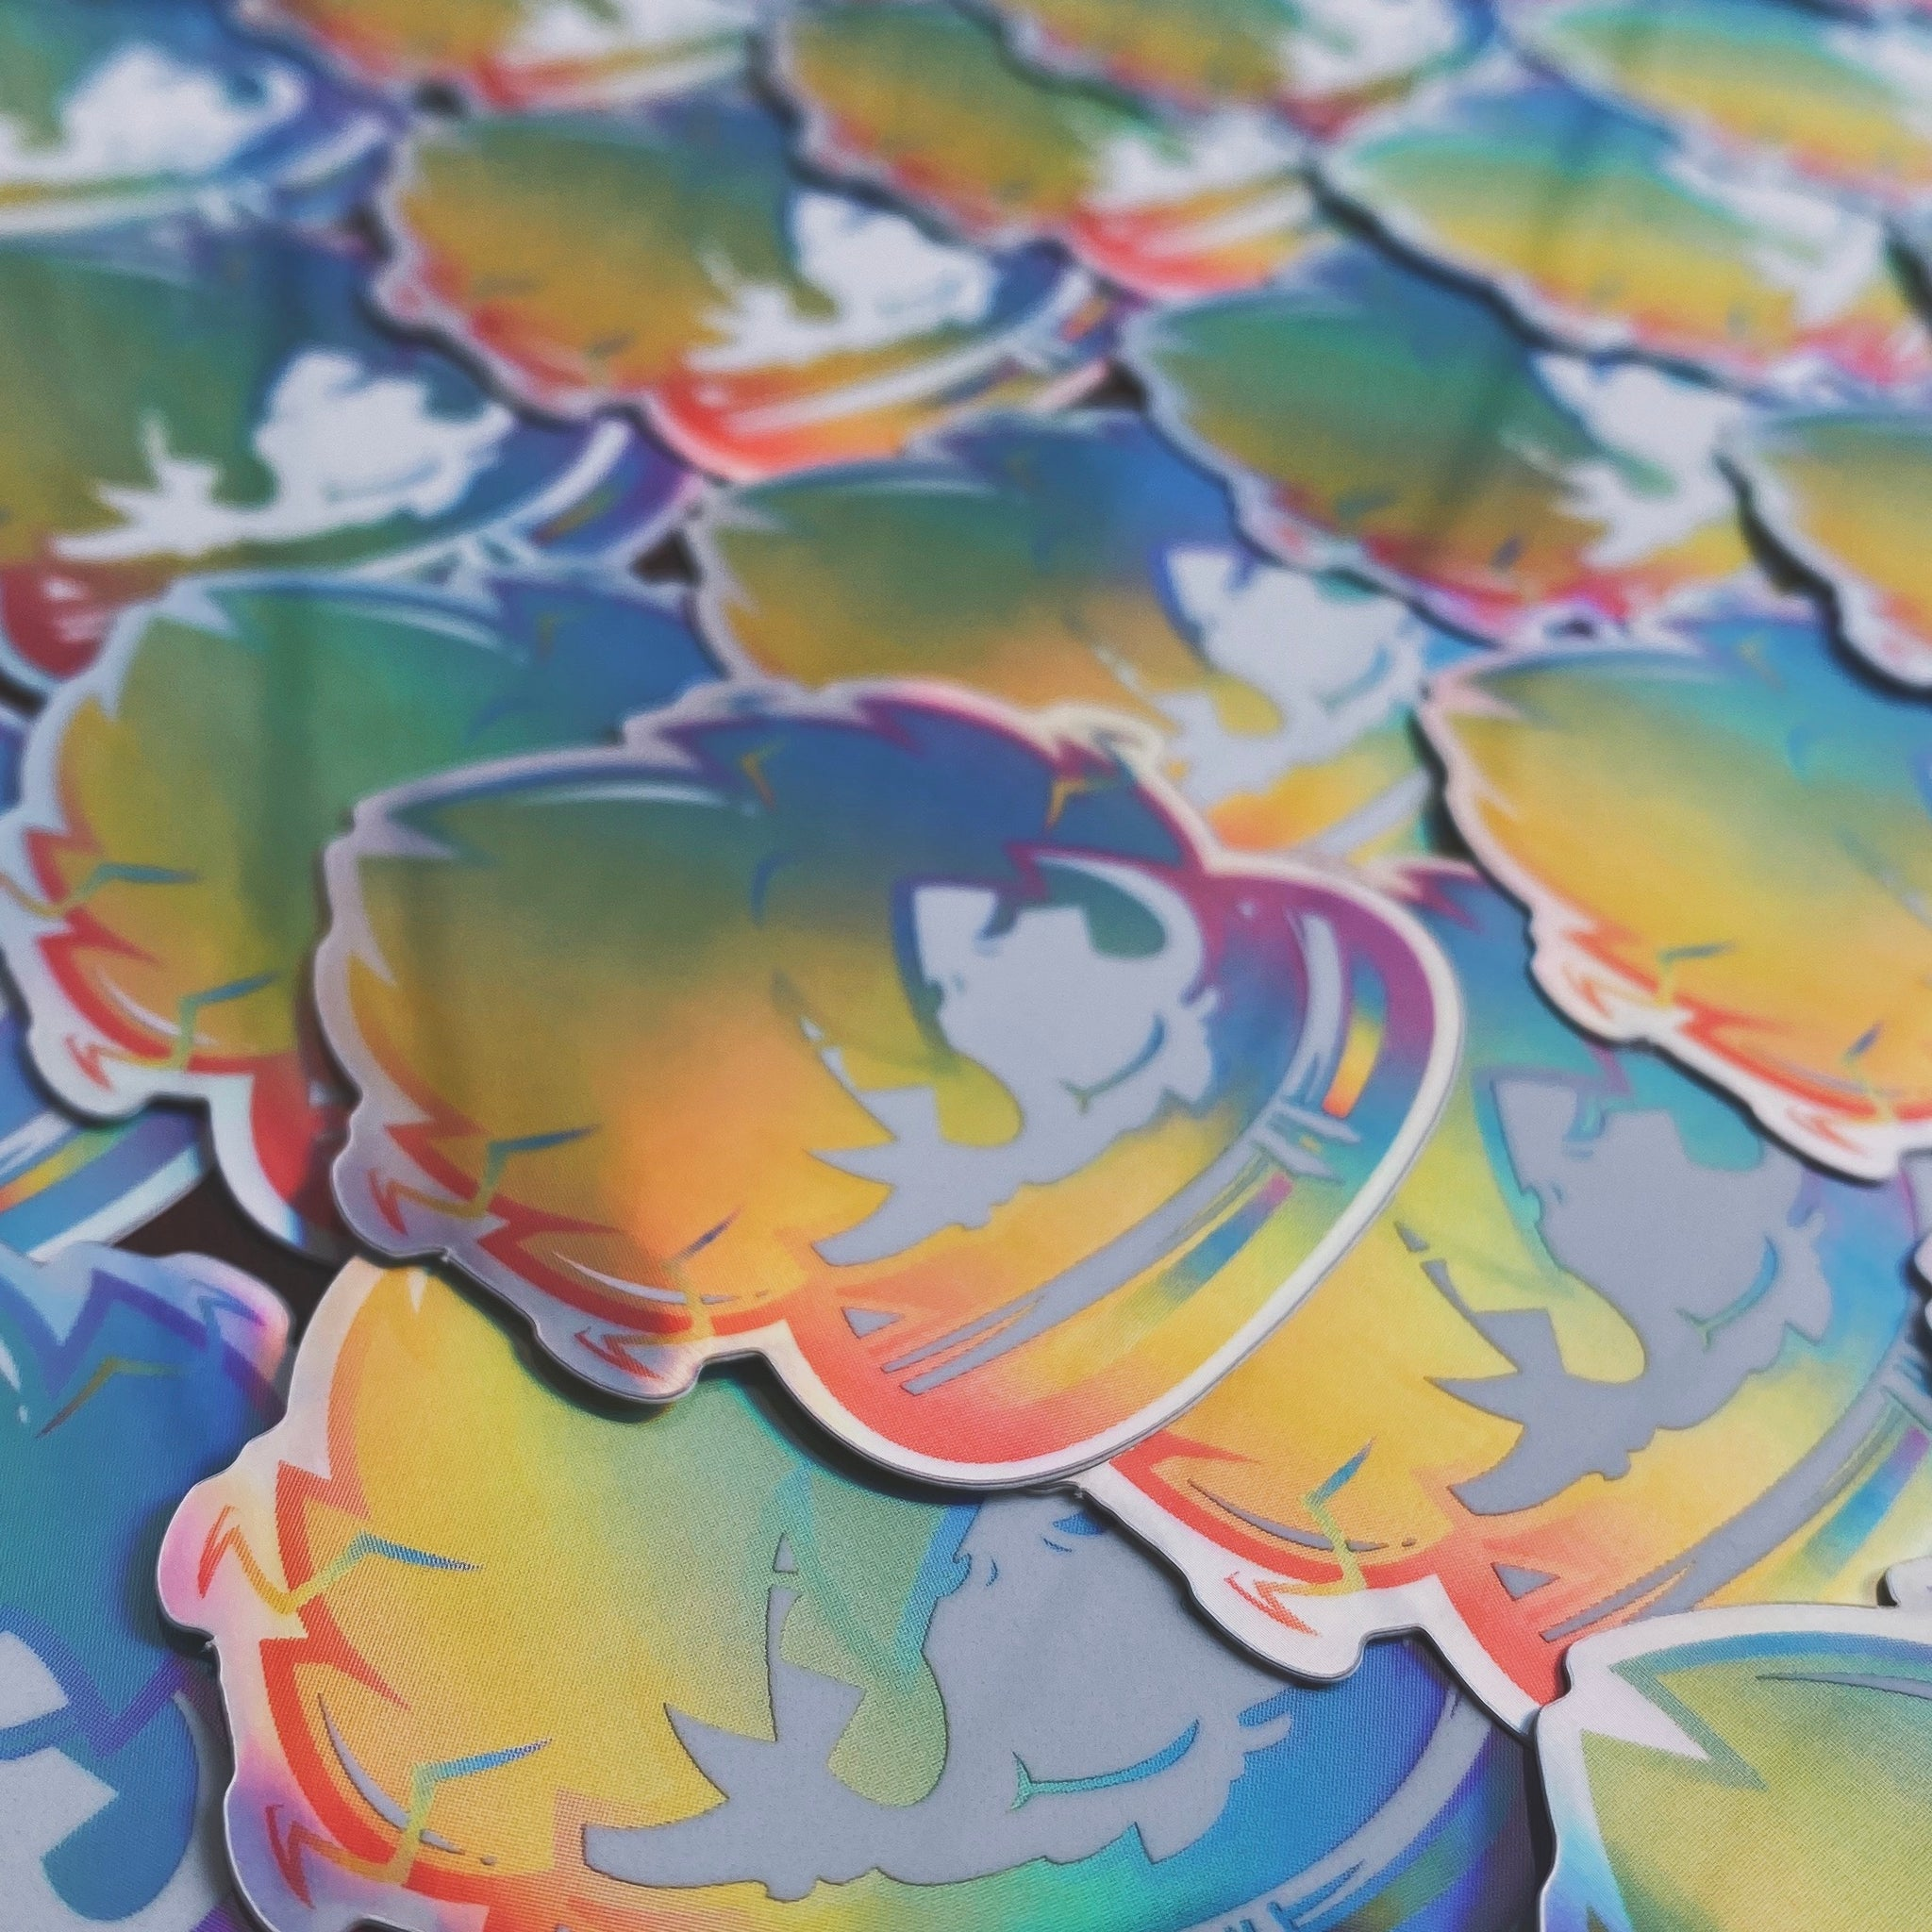 SSJ Andre Rainbow Rare Sticker (Limited to 50)